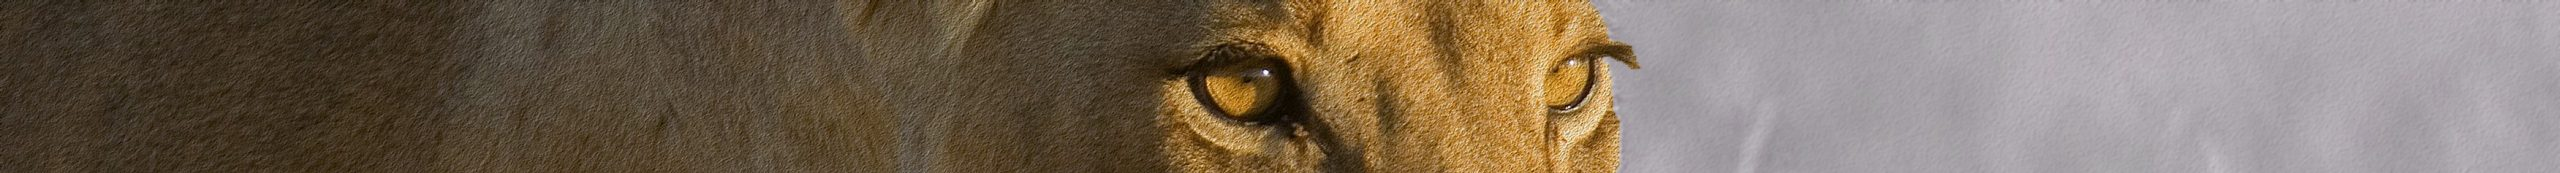 Lioness looking pensive